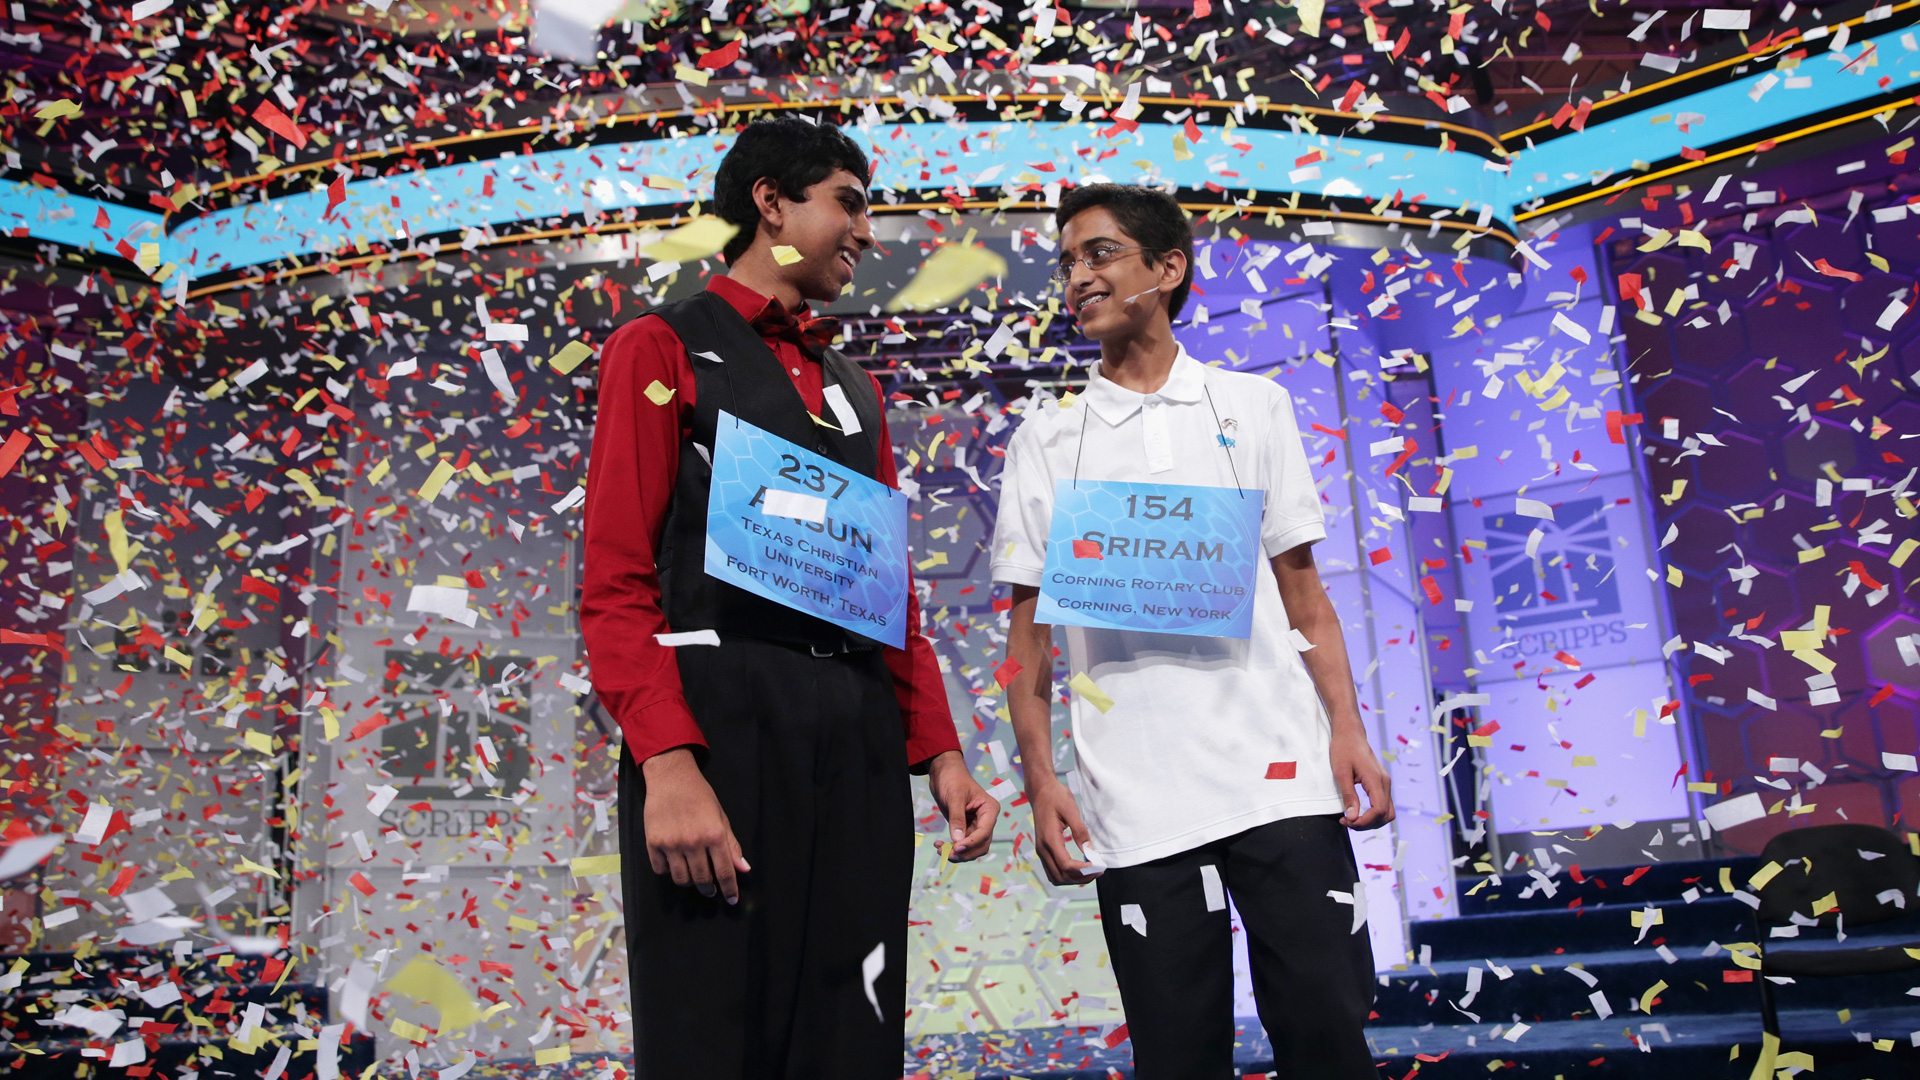 Confetti falls after Sriram Hathwar (R) of Painted Post, New York and Ansun Sujoe (L) of Fort Worth, Texas both won the 2014 Scripps National Spelling Bee competition May 29, 2014 in National Harbor, Maryland. Hathwar and Sujoe were declared as co-champions after 22 rounds of the competition.